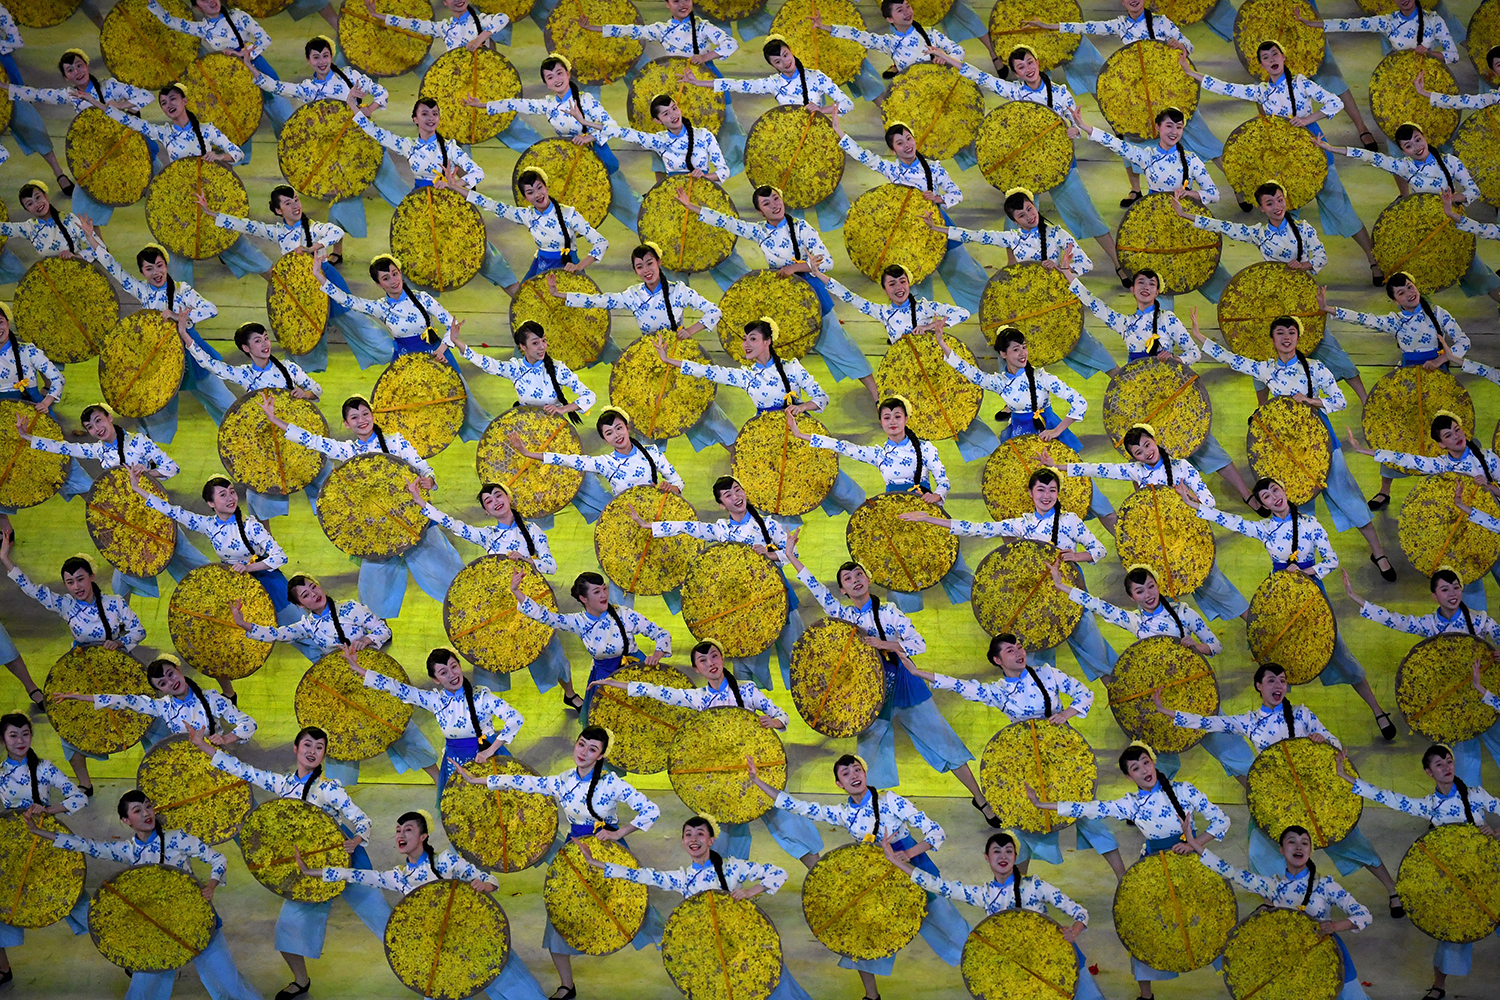 Women dance to mark China's 100th founding of Communist Party